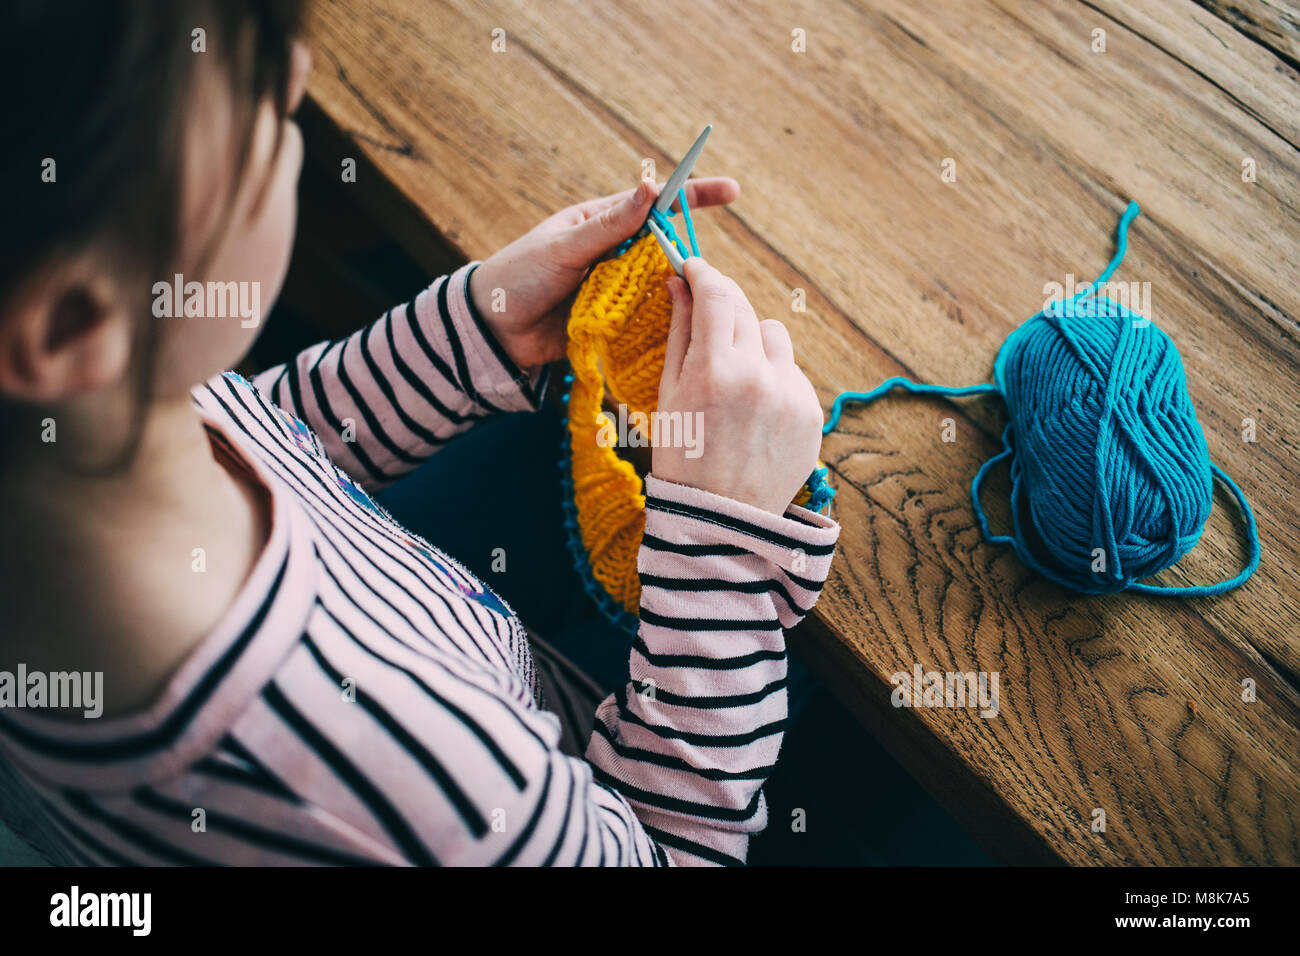 Young girl knitting a circle scarf with yellow and blue coloured yarn. Sitting at the wooden table, close up over - Stock Image